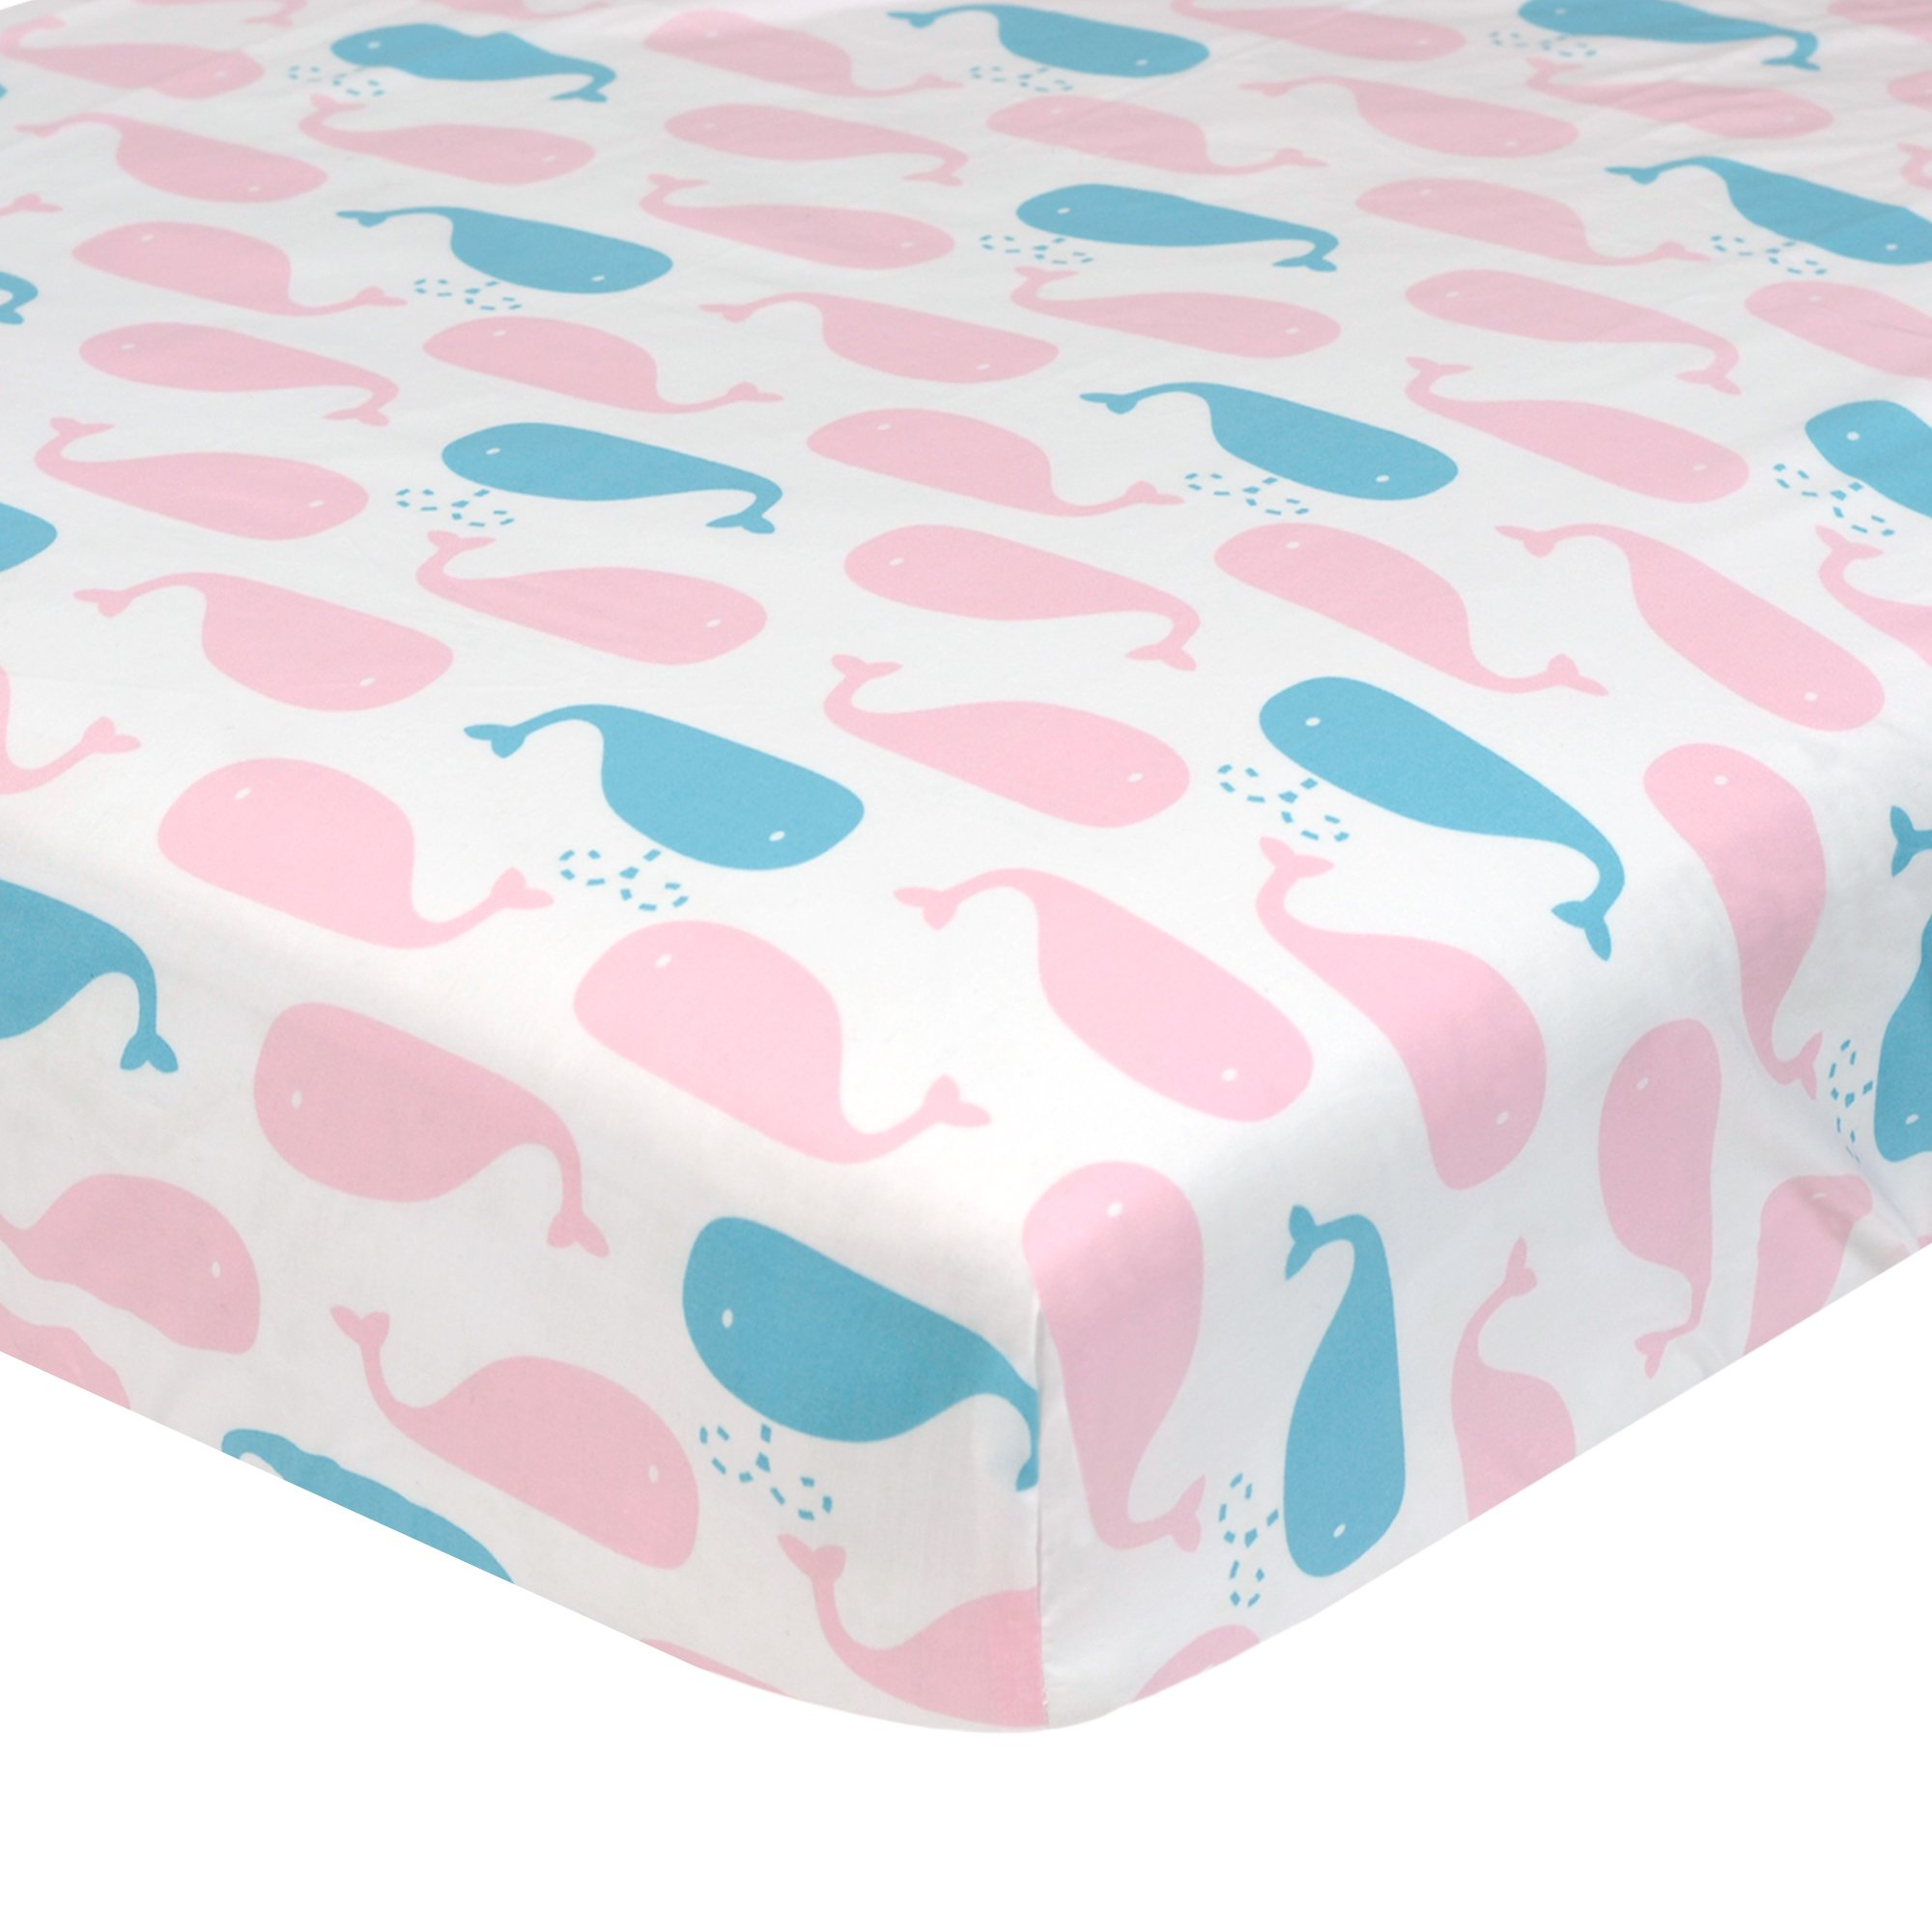 Just Born Sail Into Your Dreams Crib Sheet, Pink/Aqua Whales